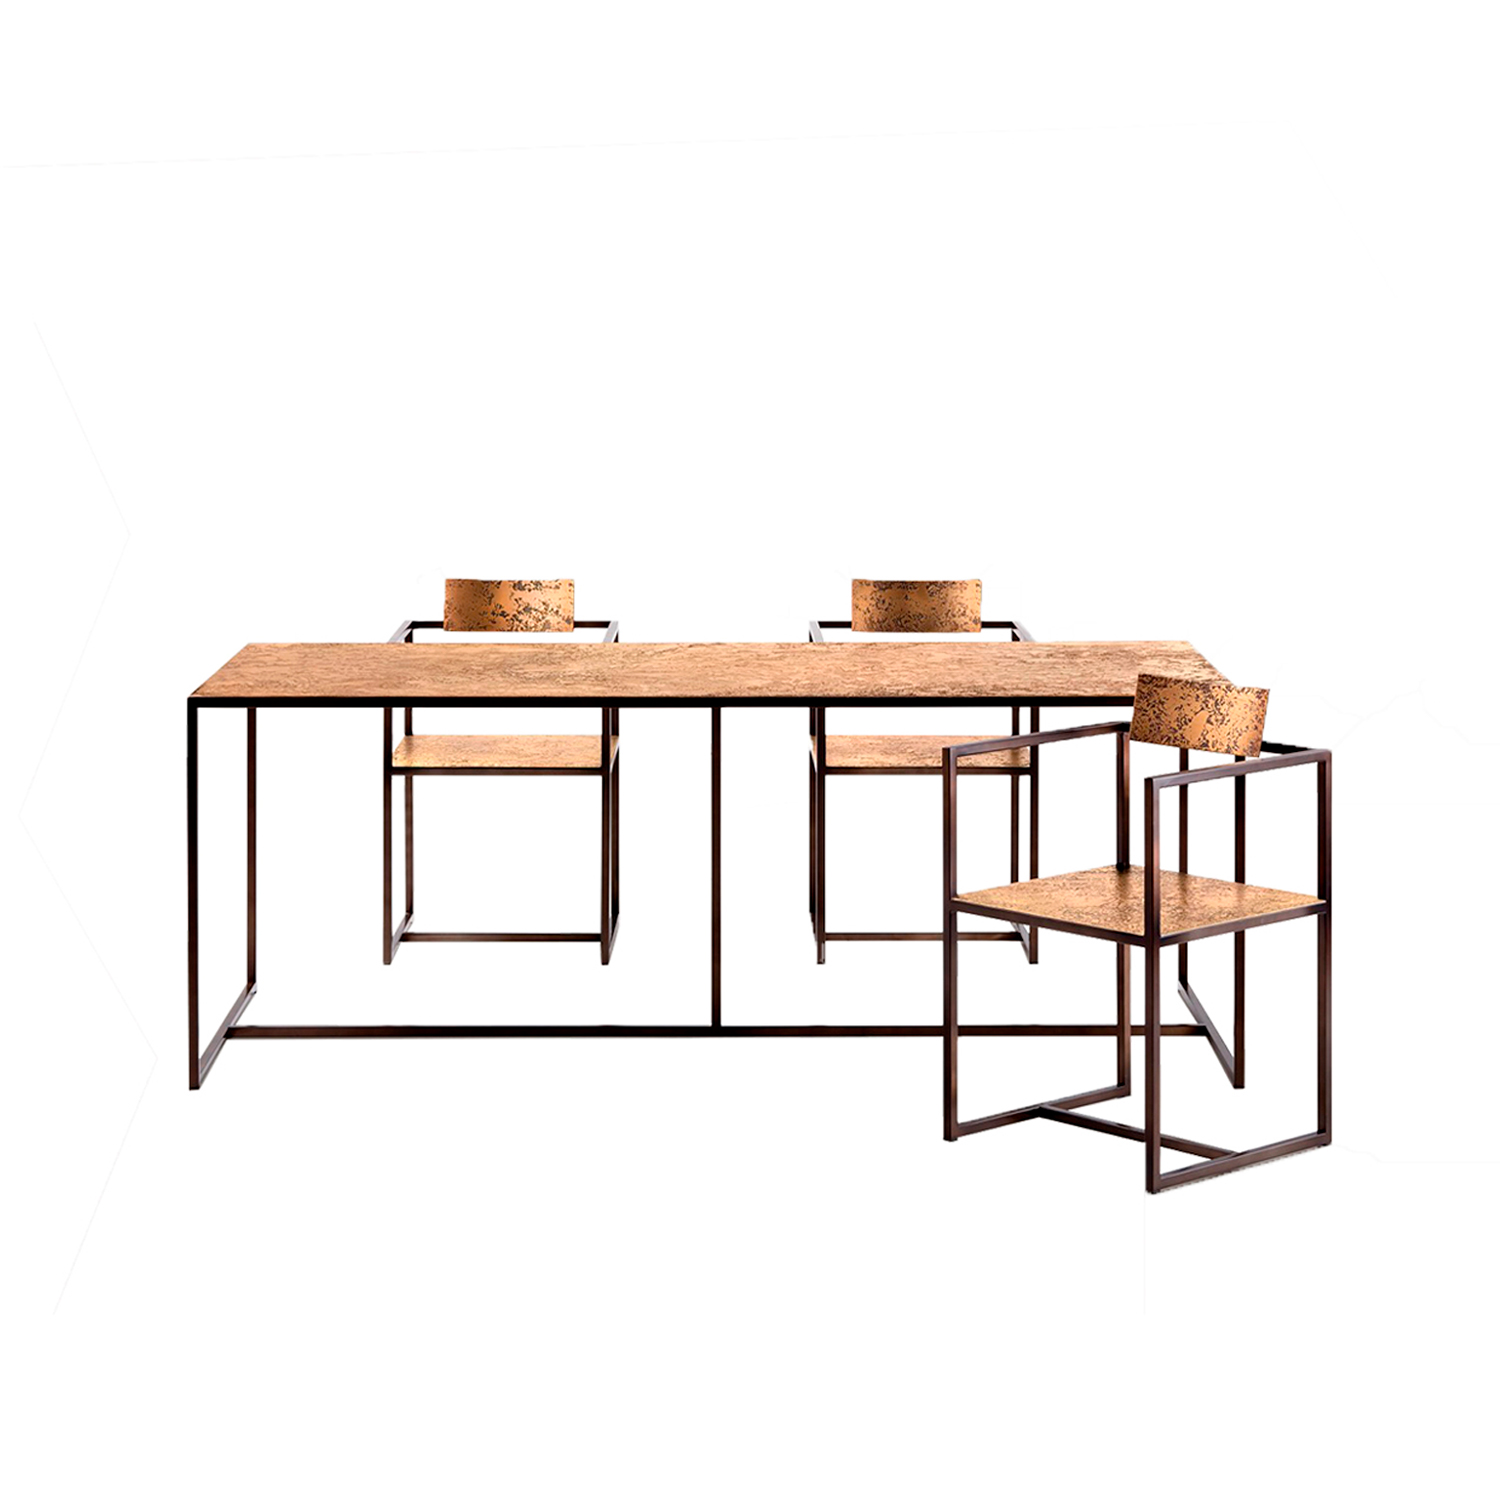 Riviera Table - Dining table with tubular metal structure.‎